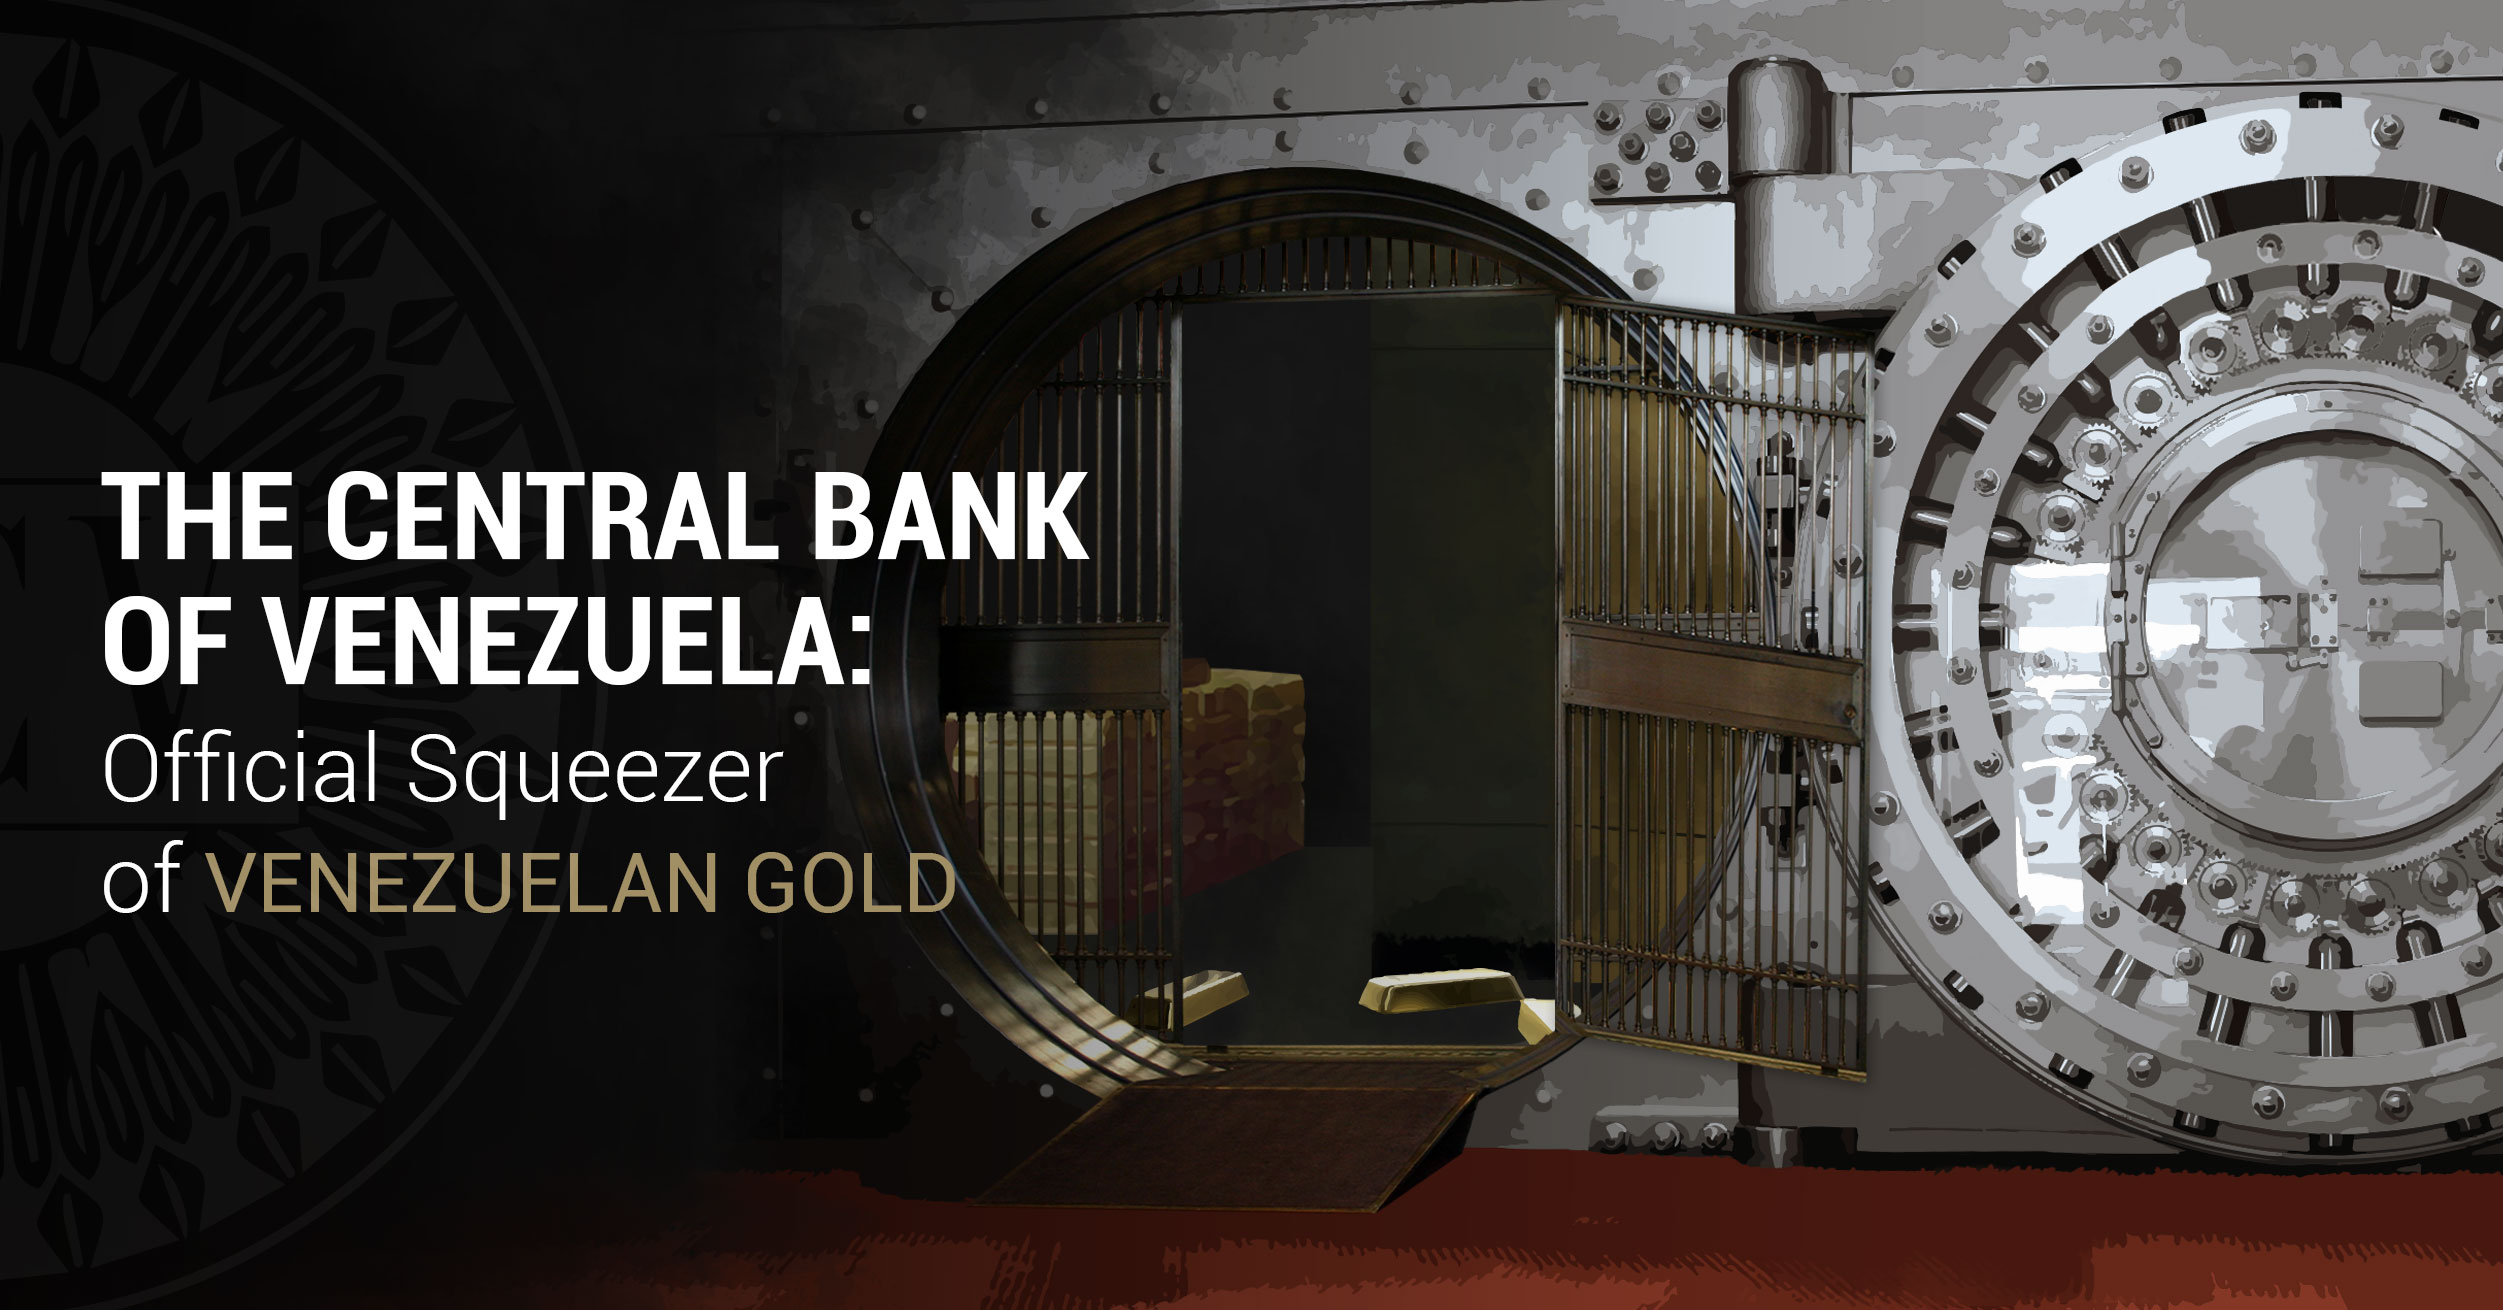 The Central Bank of Venezuela: Official Squeezer of Venezuelan Gold